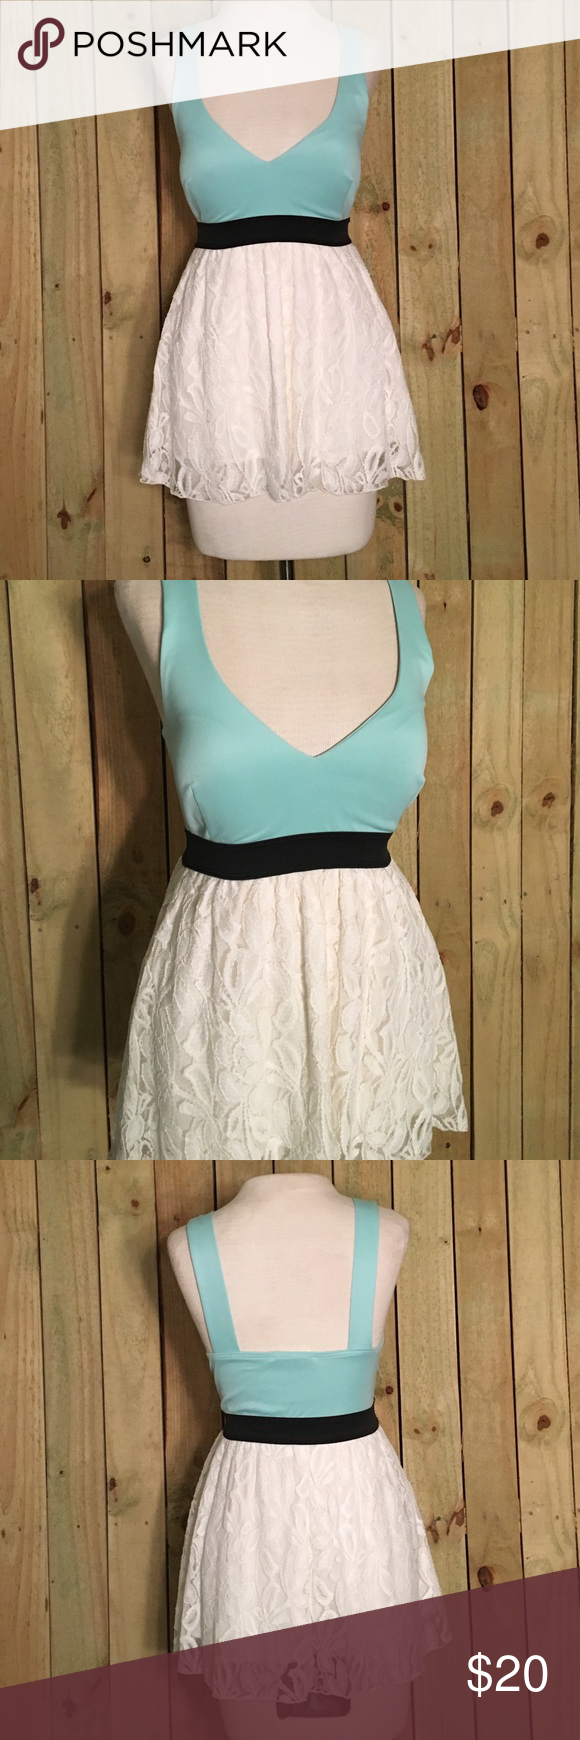 *50% OFF BUNDLES* NWOT blue tank with lace accent NWOT blue v neck tank with white lace accent and black stretch band Tops Tank Tops